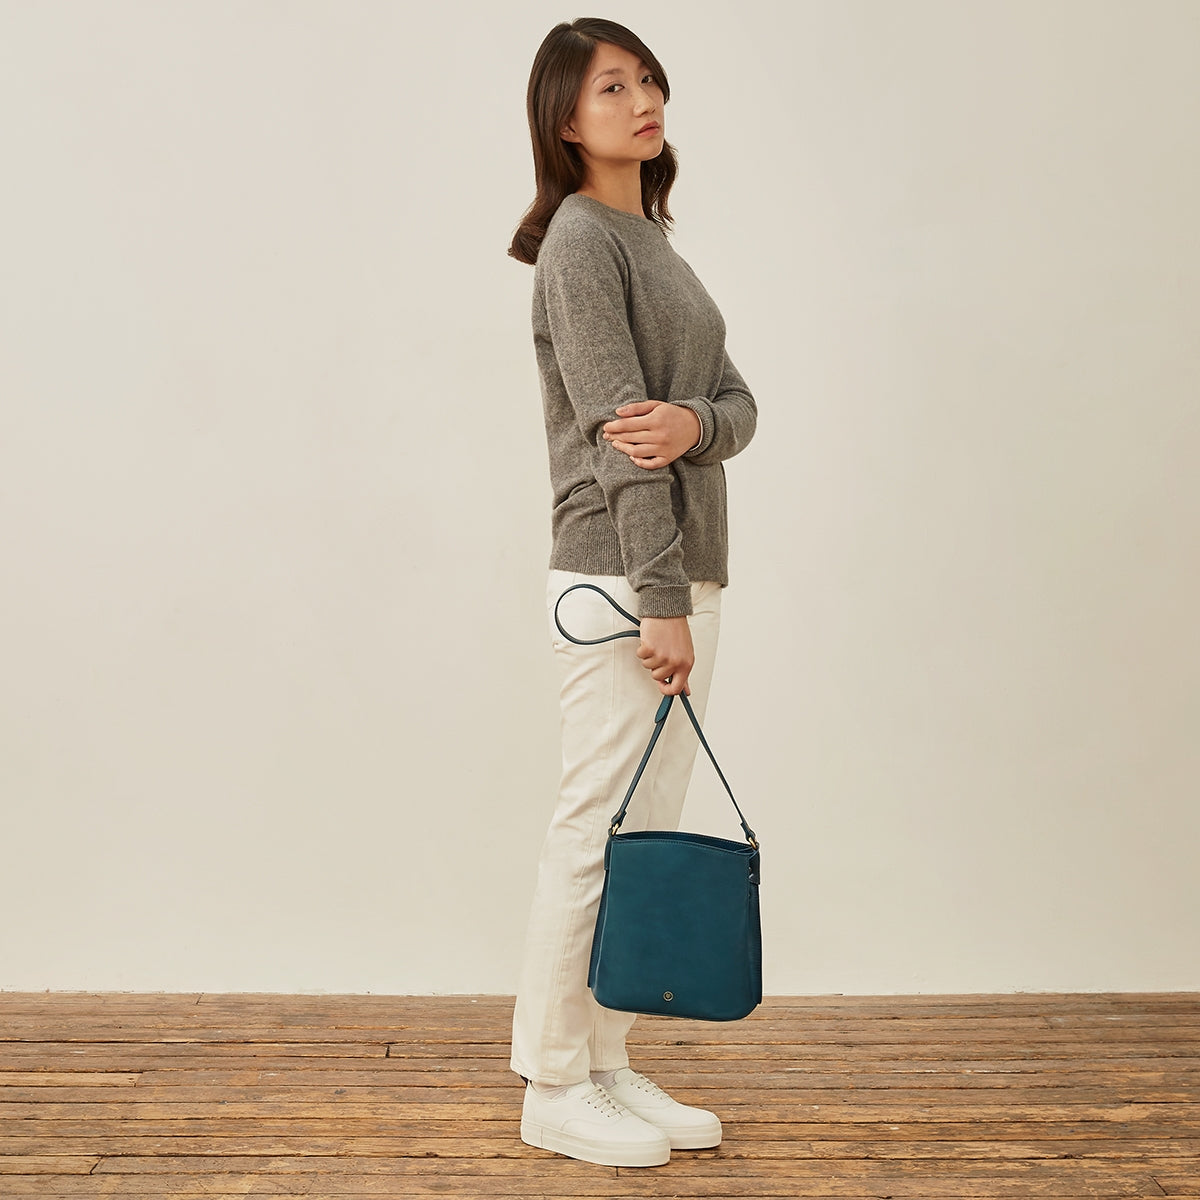 Image 9 of the 'Palermo' Petrol Leather Ladies Bucket Bag Handbag